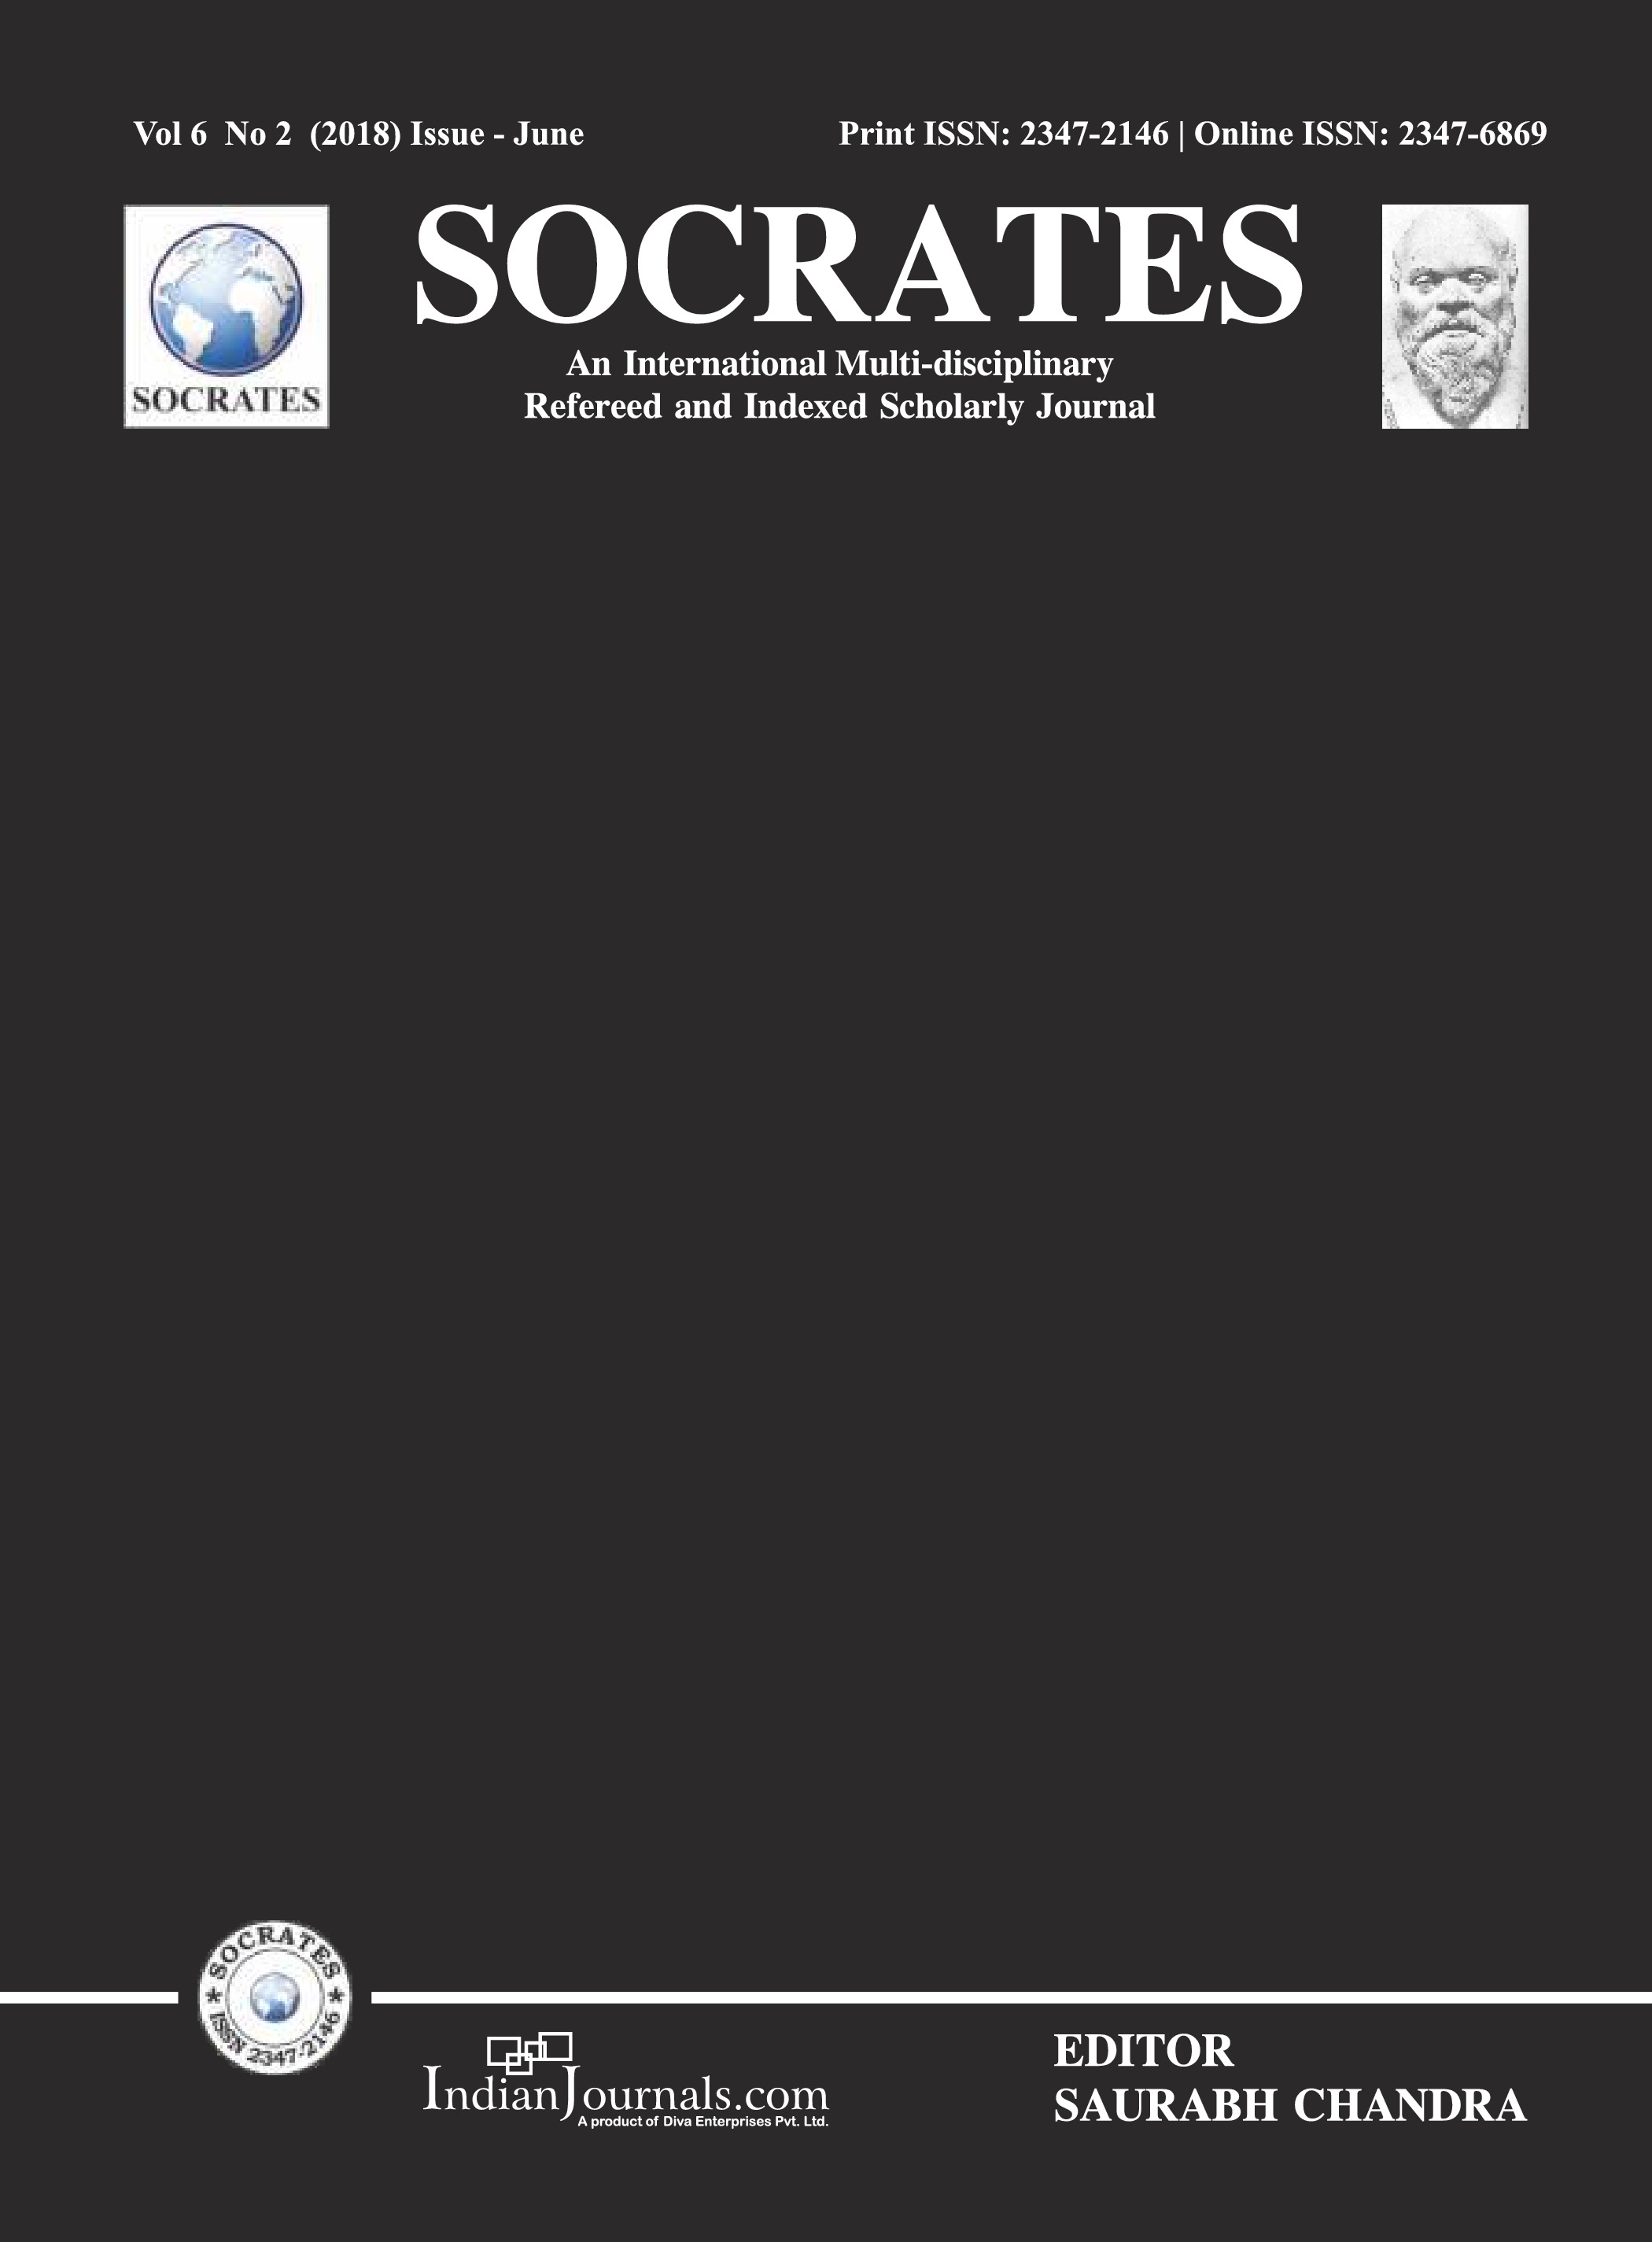 SOCRATES VOL. 4 NO. 2 (2016) ISSUE JUNE